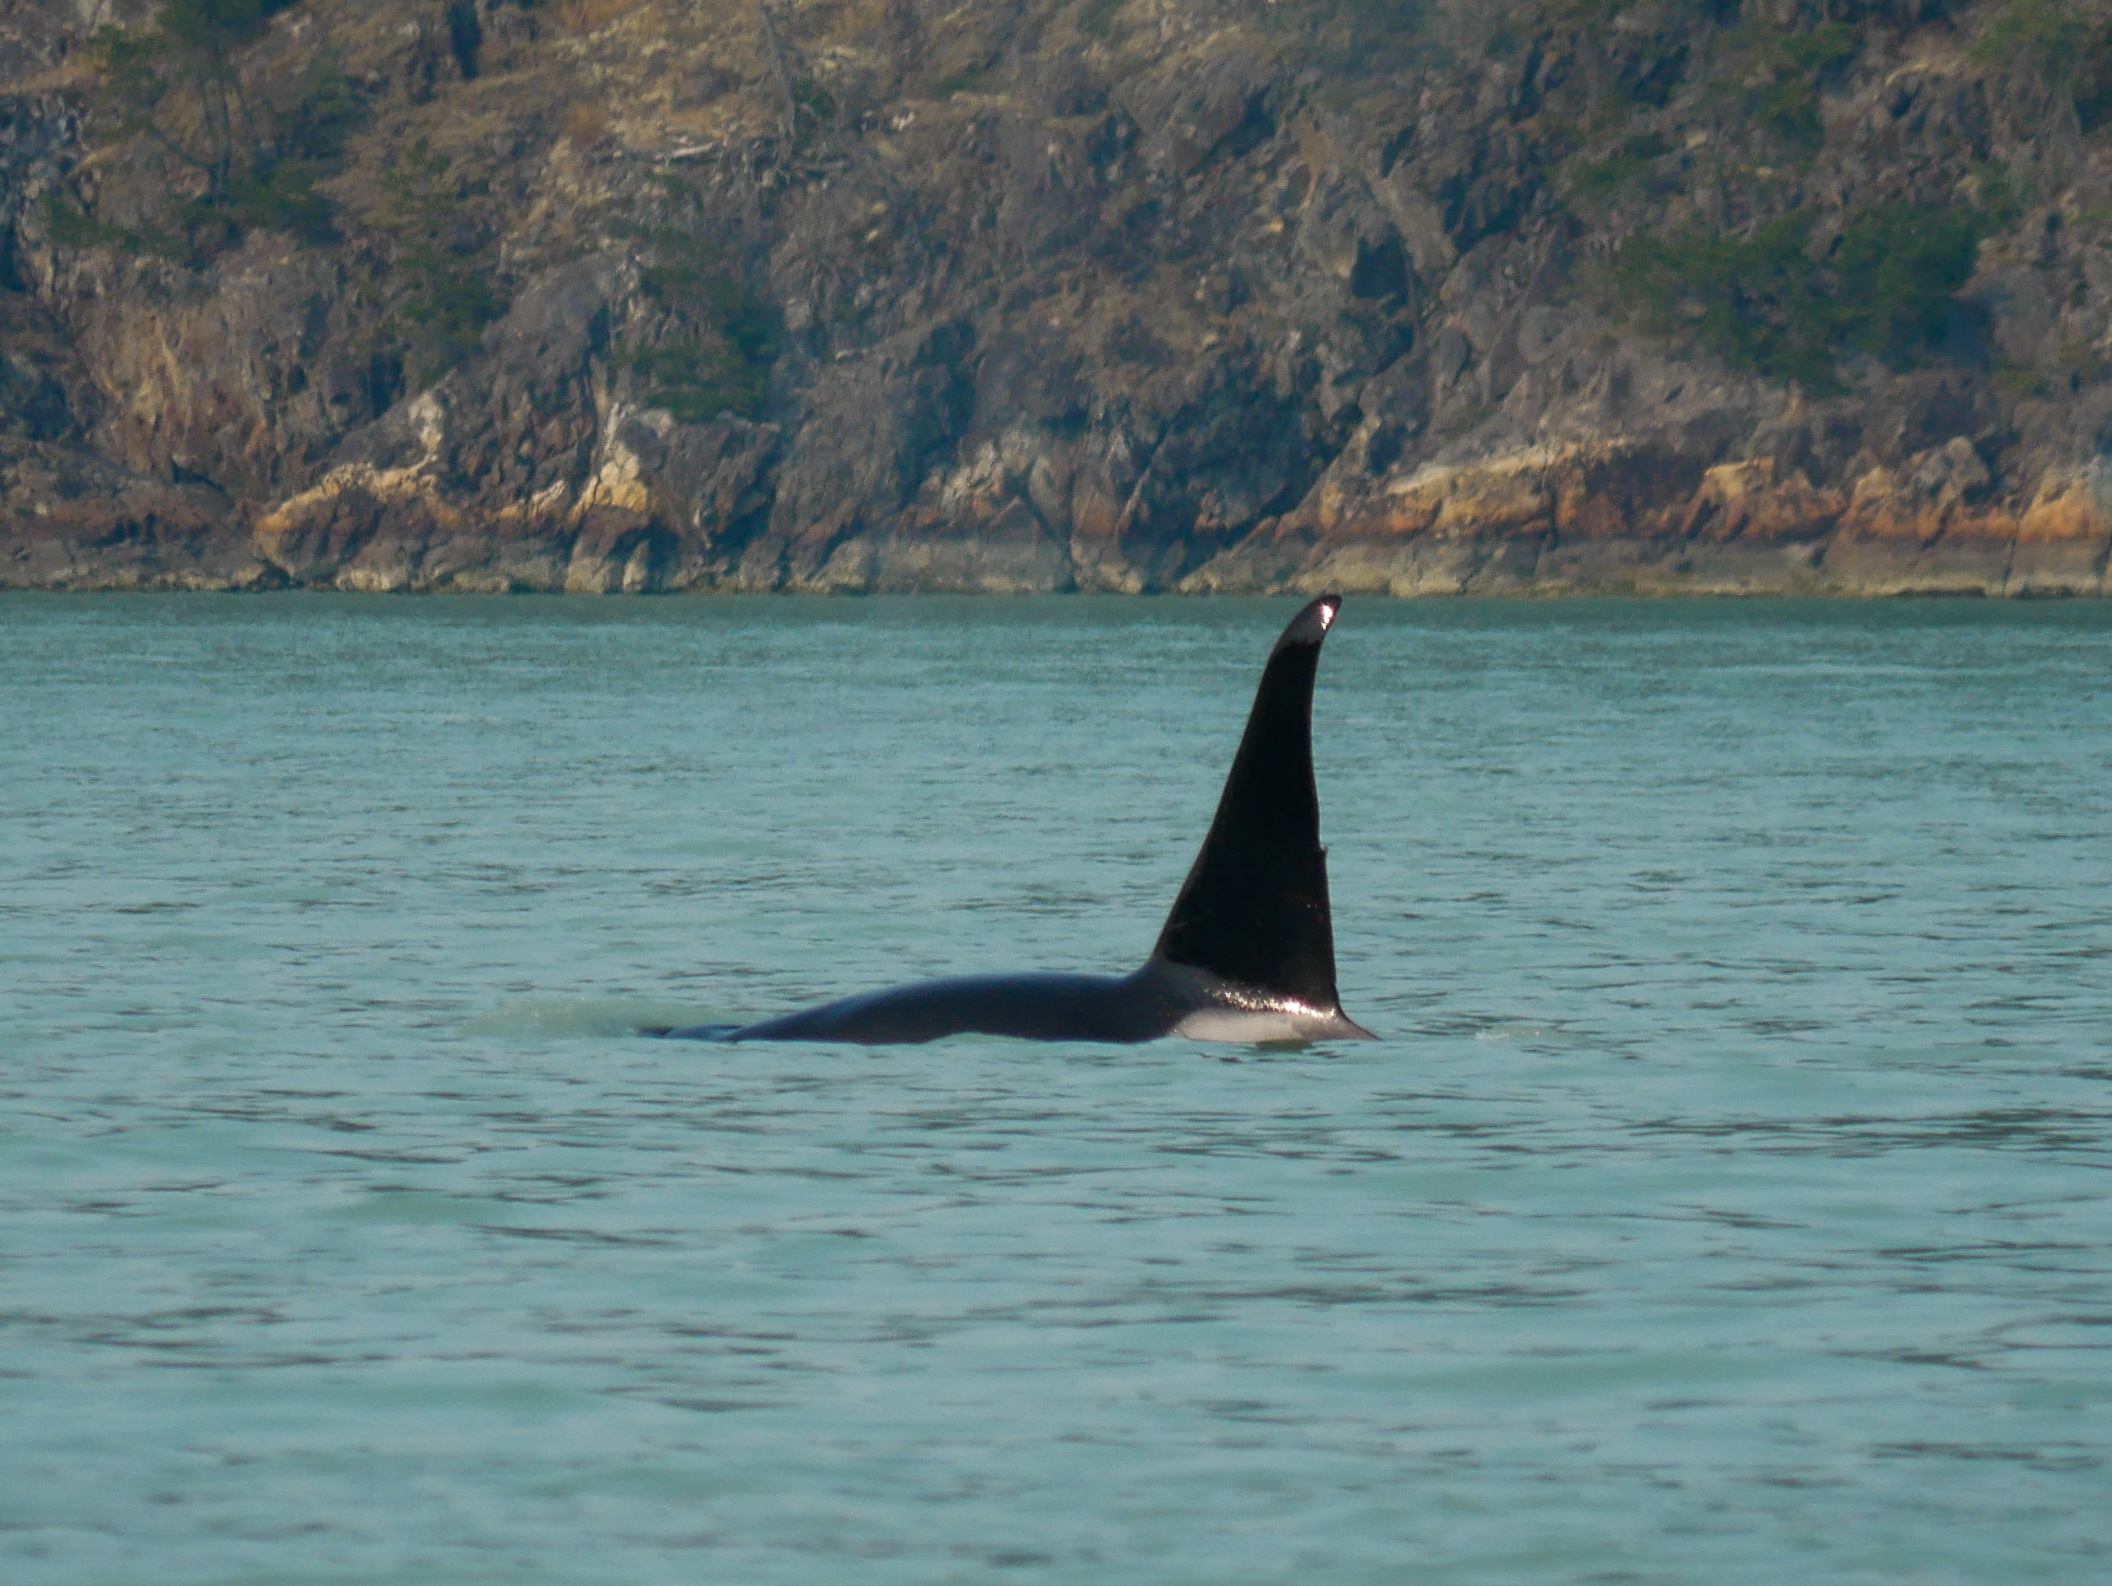 T46E's dorsal fin with the nick right in the middle, he is an 18 year old male orca! Photo by Alanna Vivani.